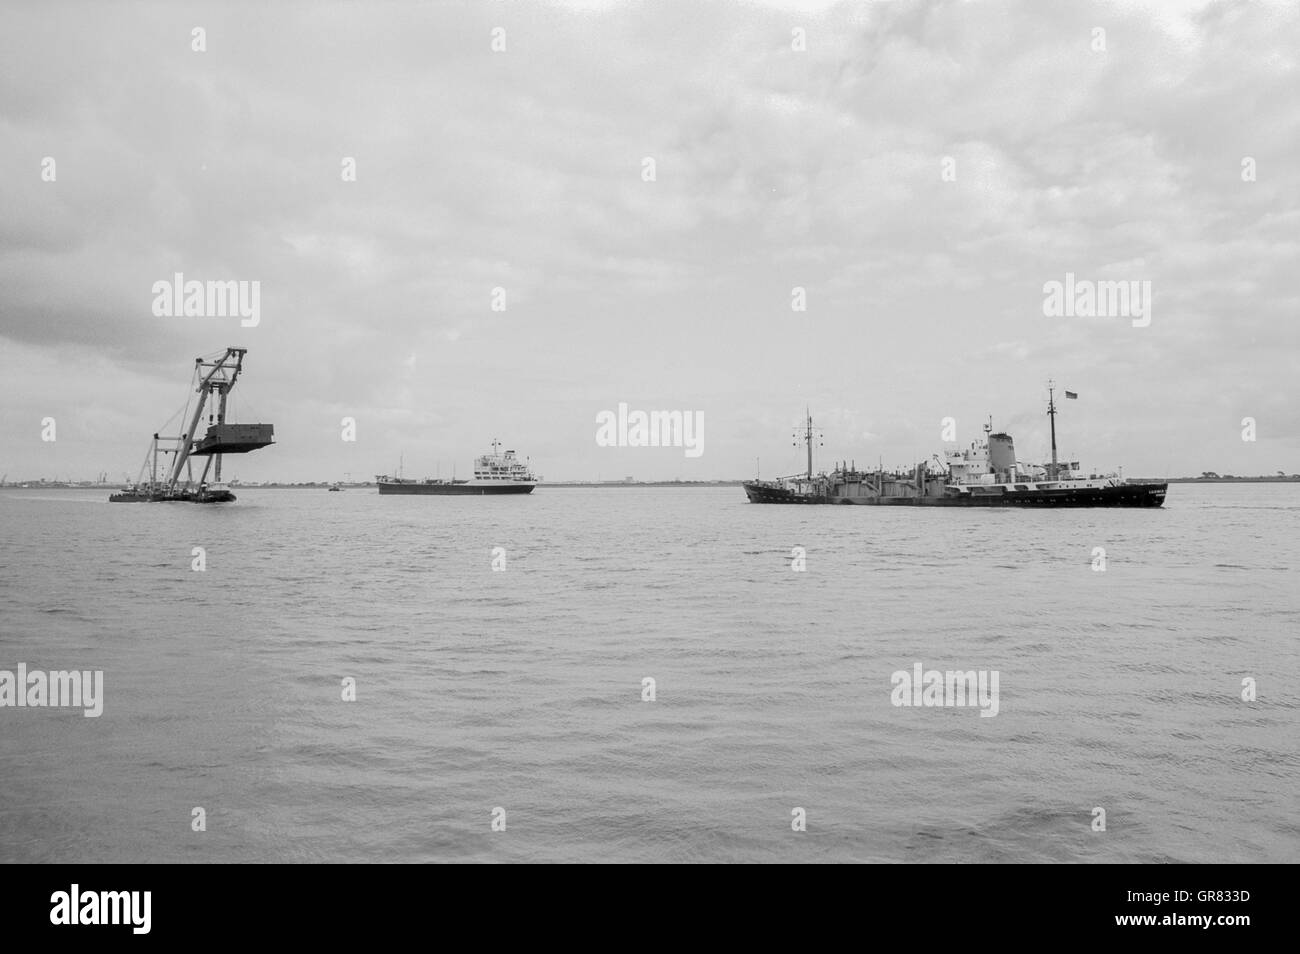 Enak Floating Crane 1972 - Stock Image